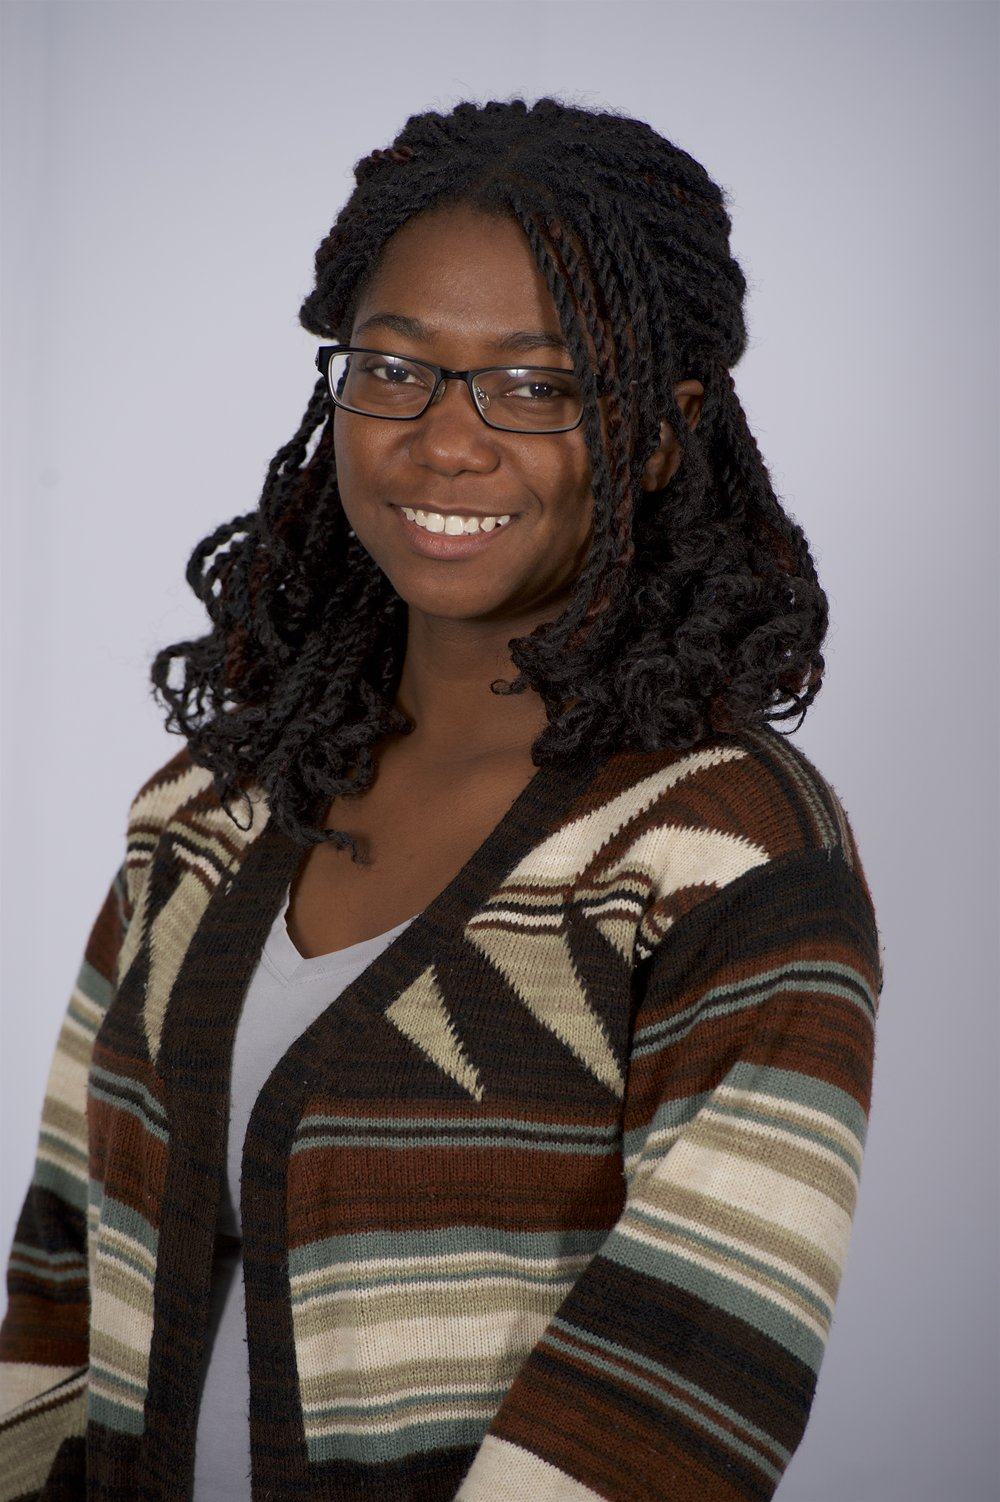 Photo of doctoral student Sikoya Ashburn wearing a striped sweater and glasses